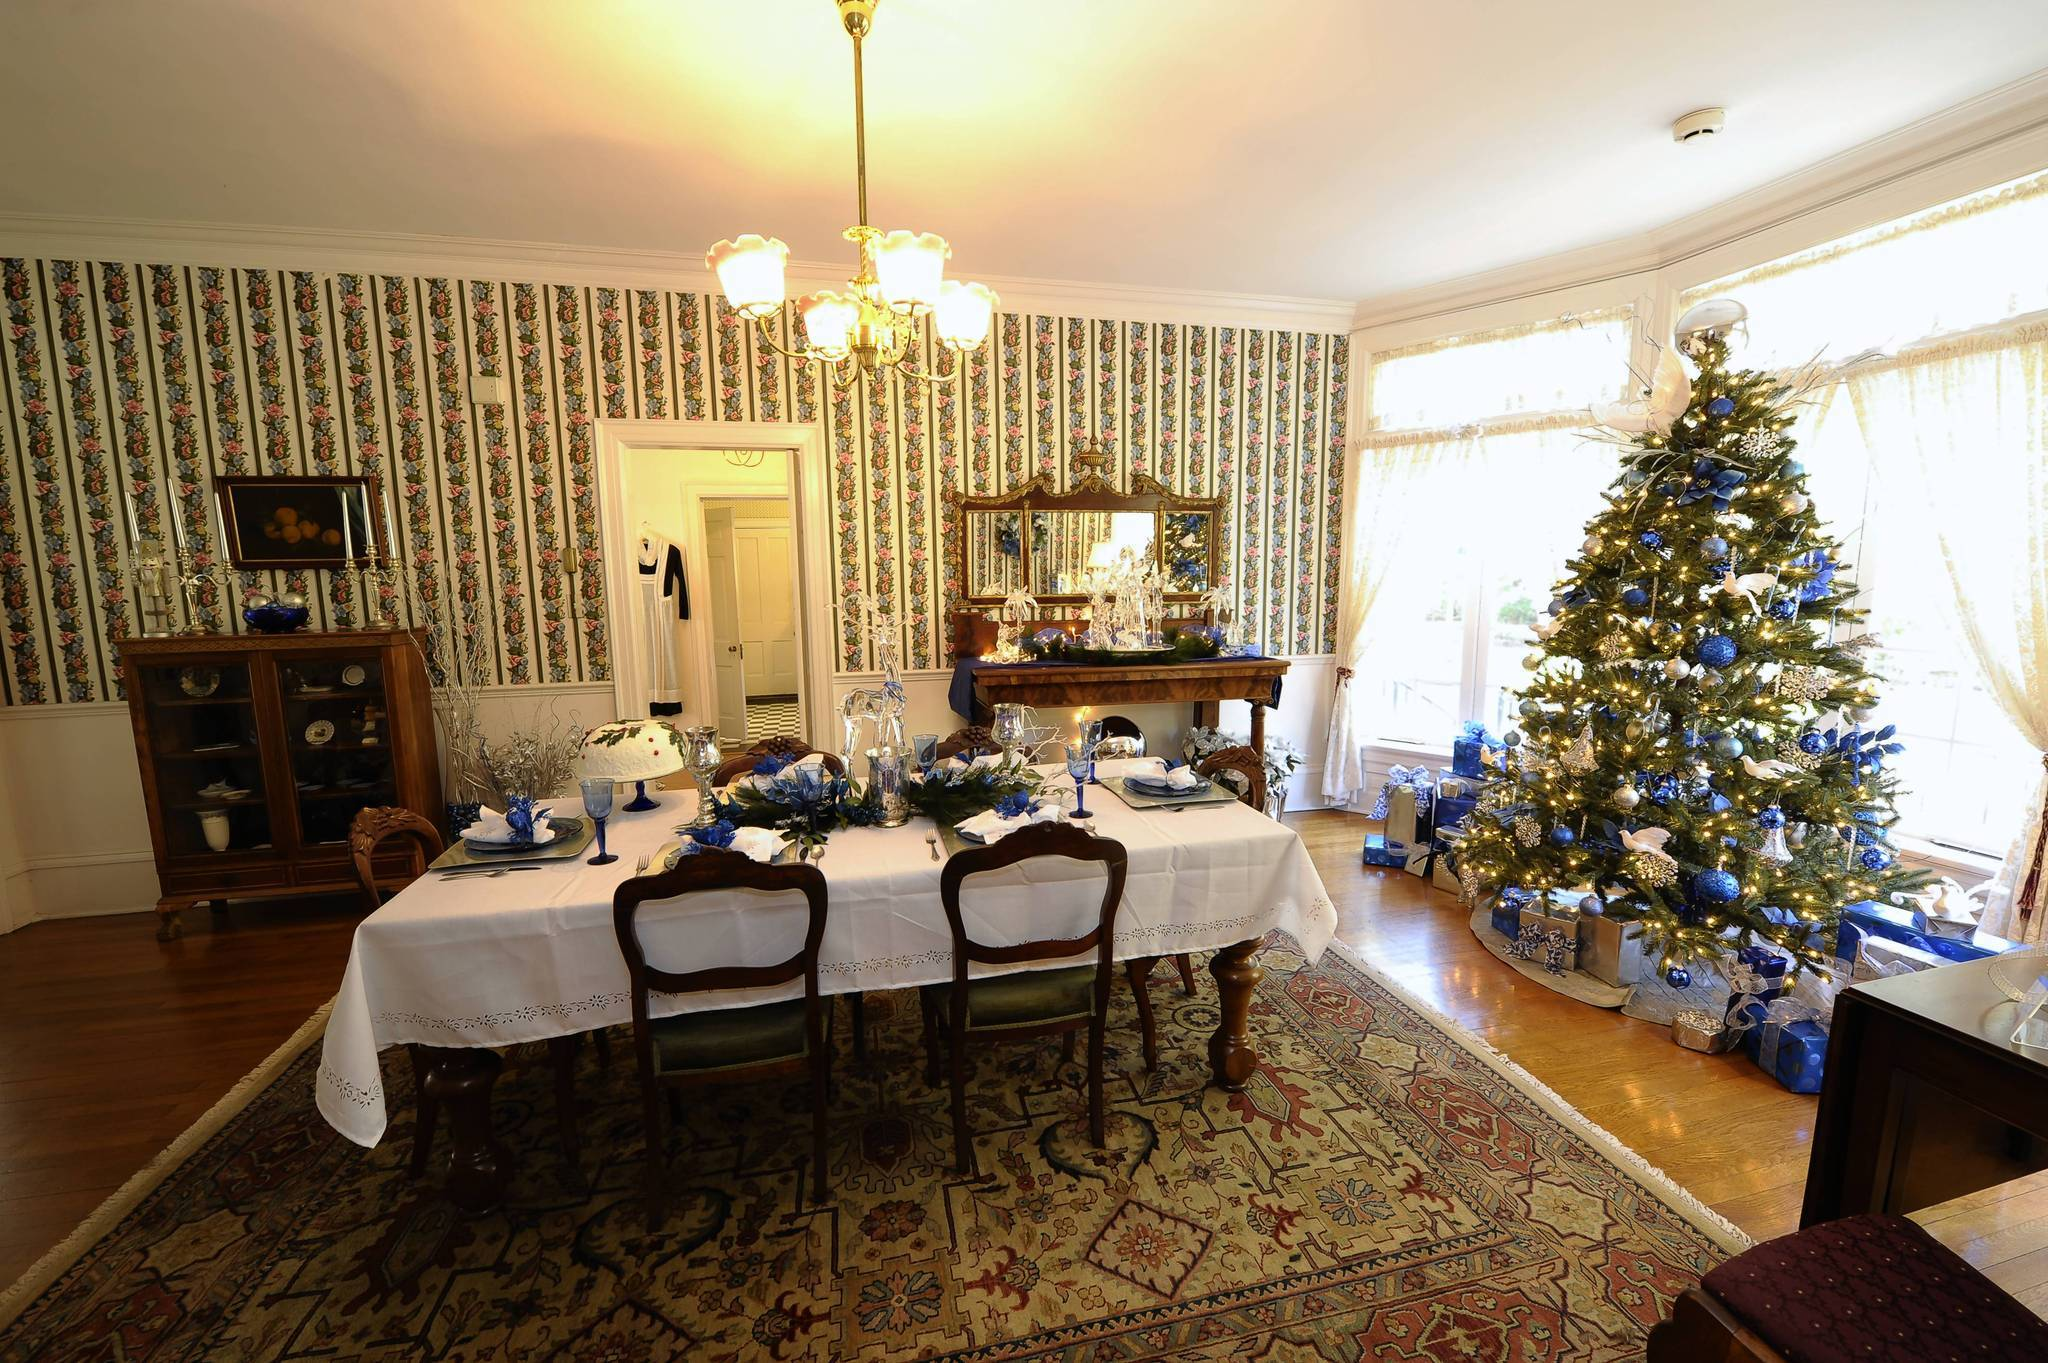 The 11-room Harry P. Leu House will be adorned with Christmas trees, holiday dioramas and festive decorations at Harry P. Leu Gardens in Orlando.